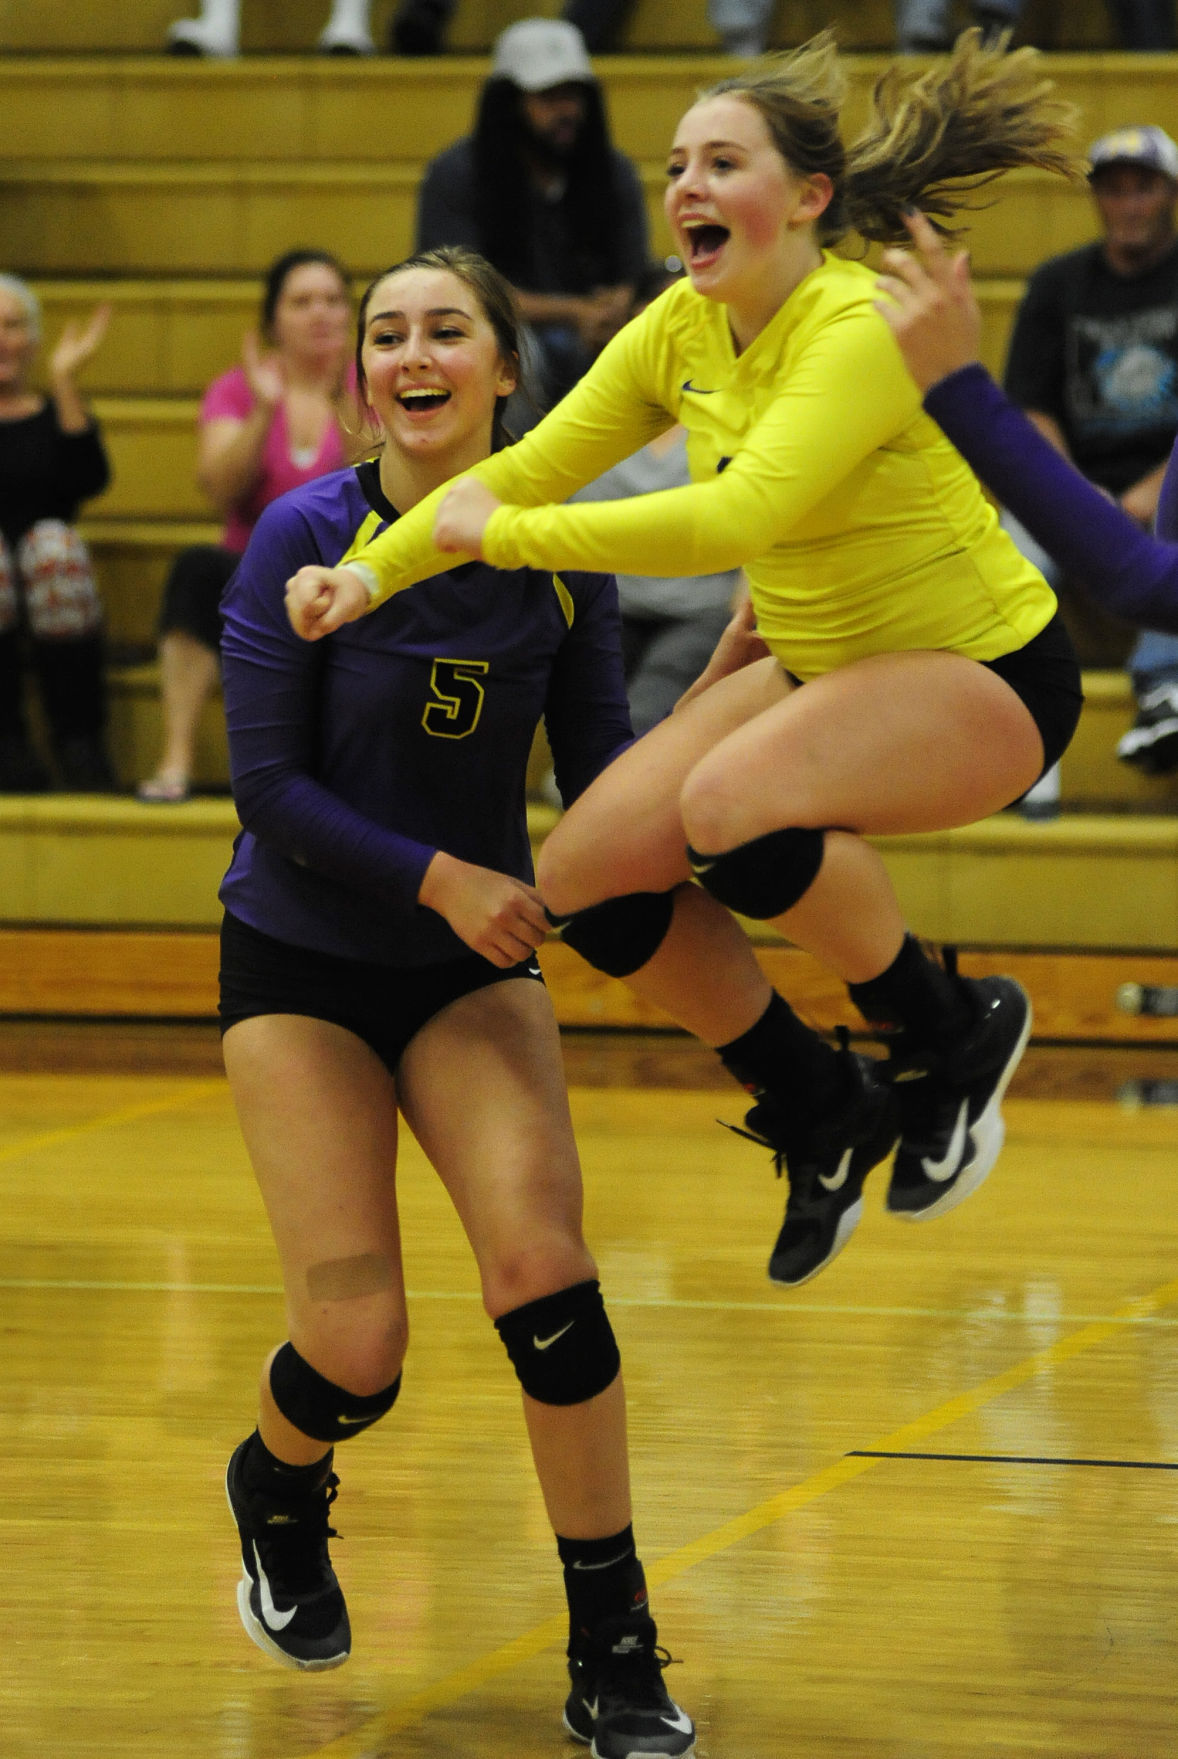 Marshfield takes down North Bend, volleyball